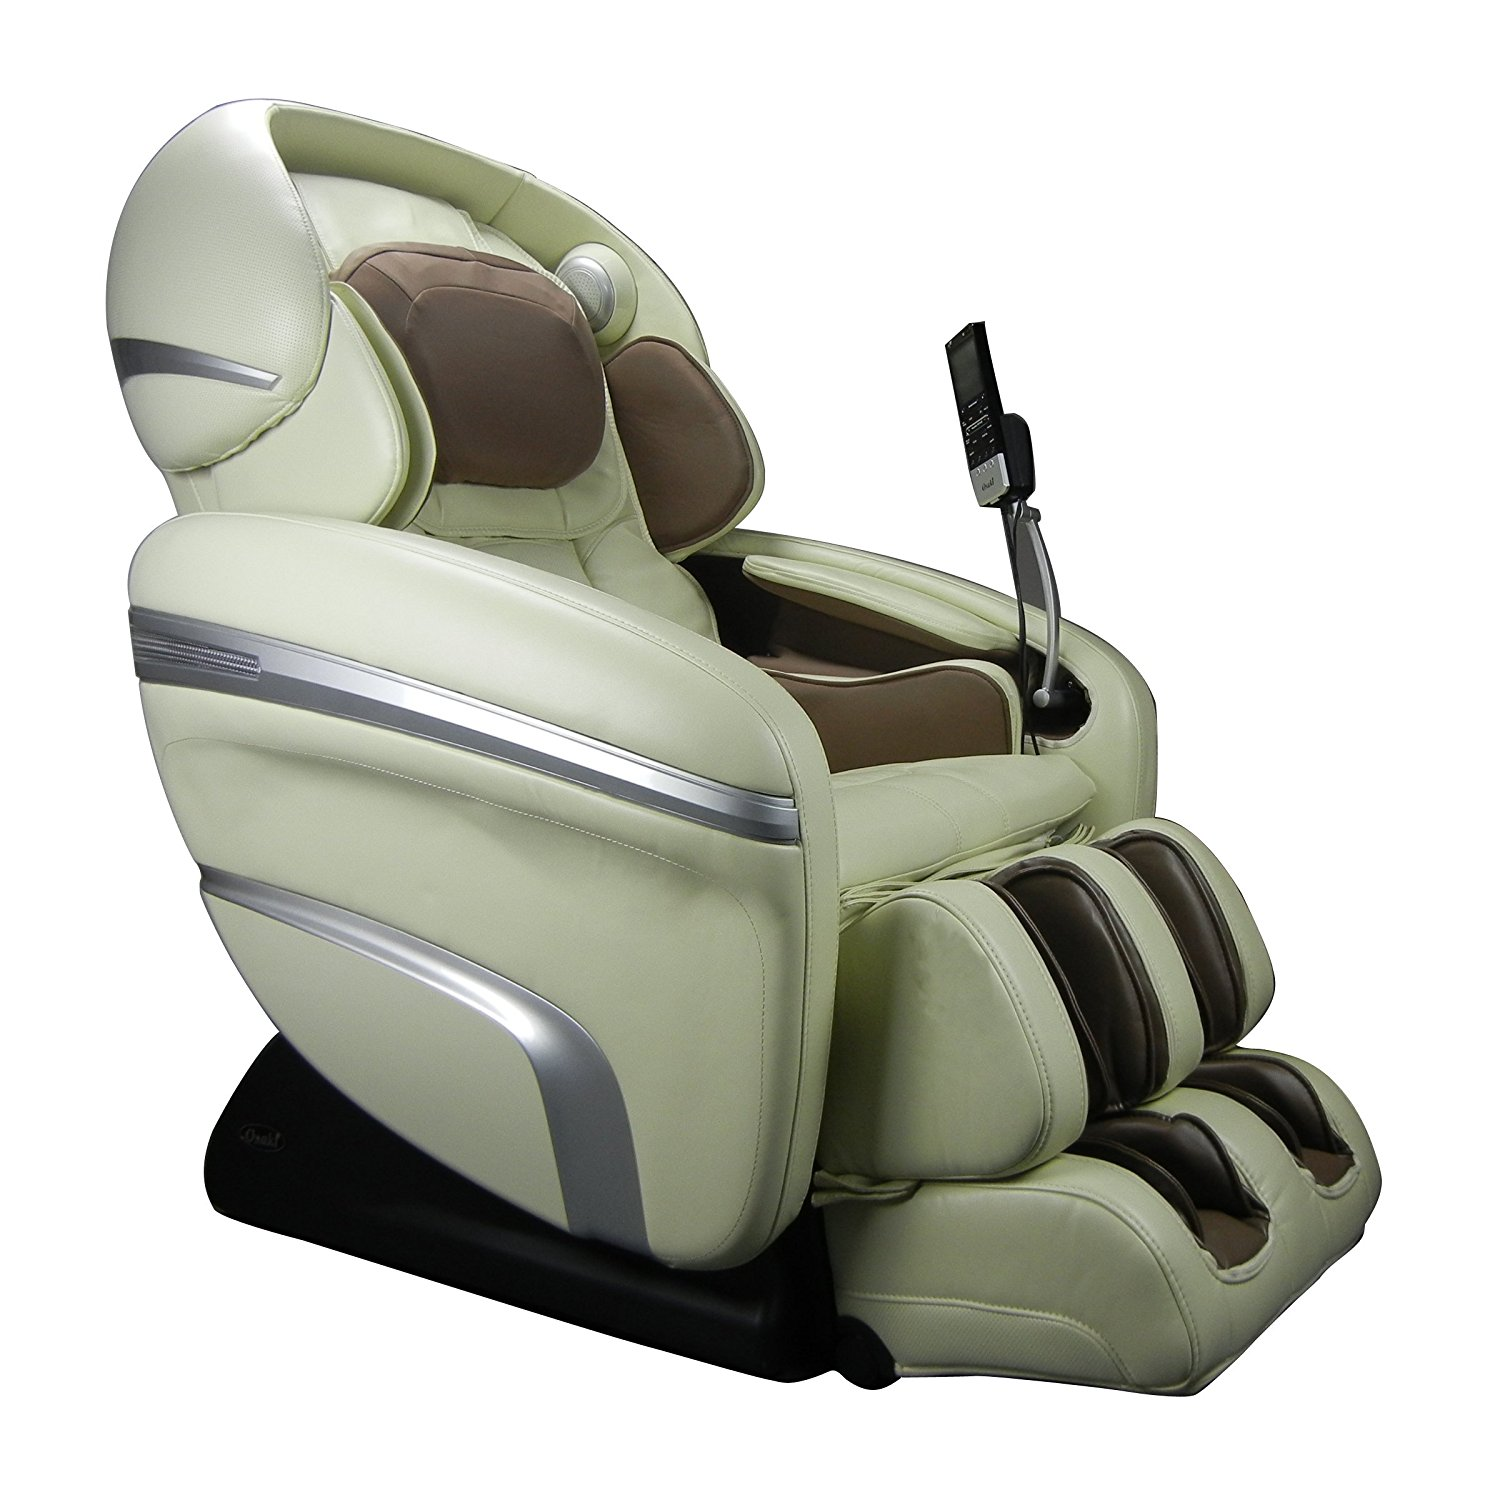 Osaki Os 7200cr Full Body Massage Chair Computer Scan Zero Gravity Position Foot Rollers Quad Roller Head Auto Leg Heat Therapy Cream